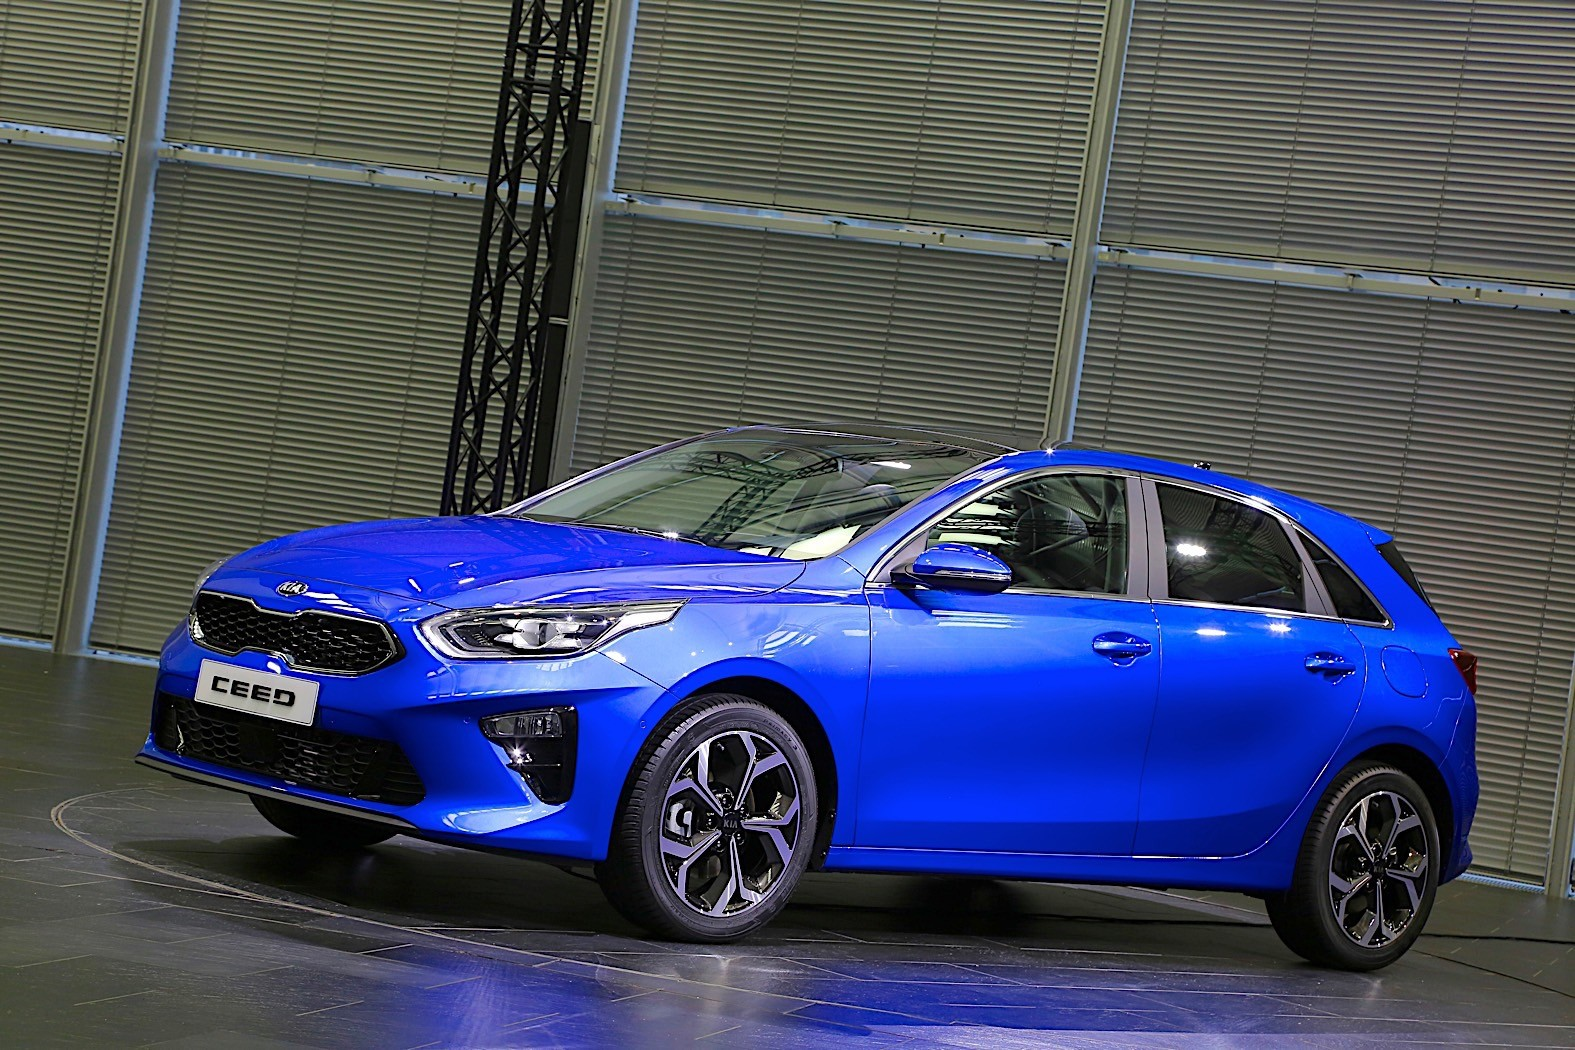 Kia gunning for Golf with new Ceed hatch